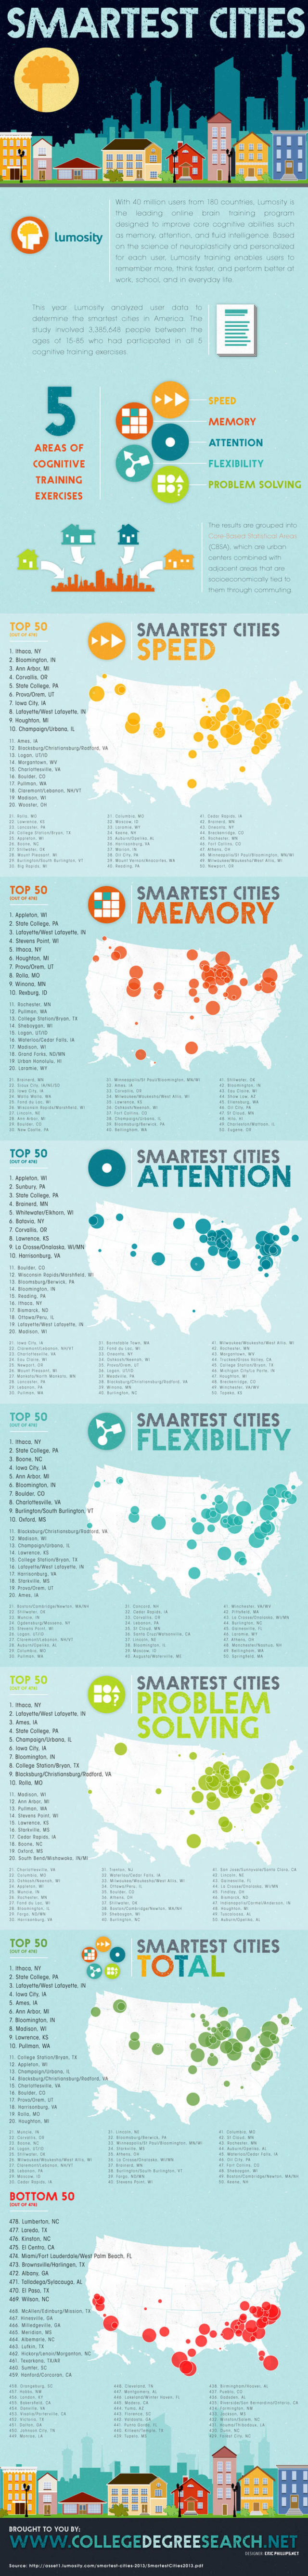 The Smartest Cities in America (2)